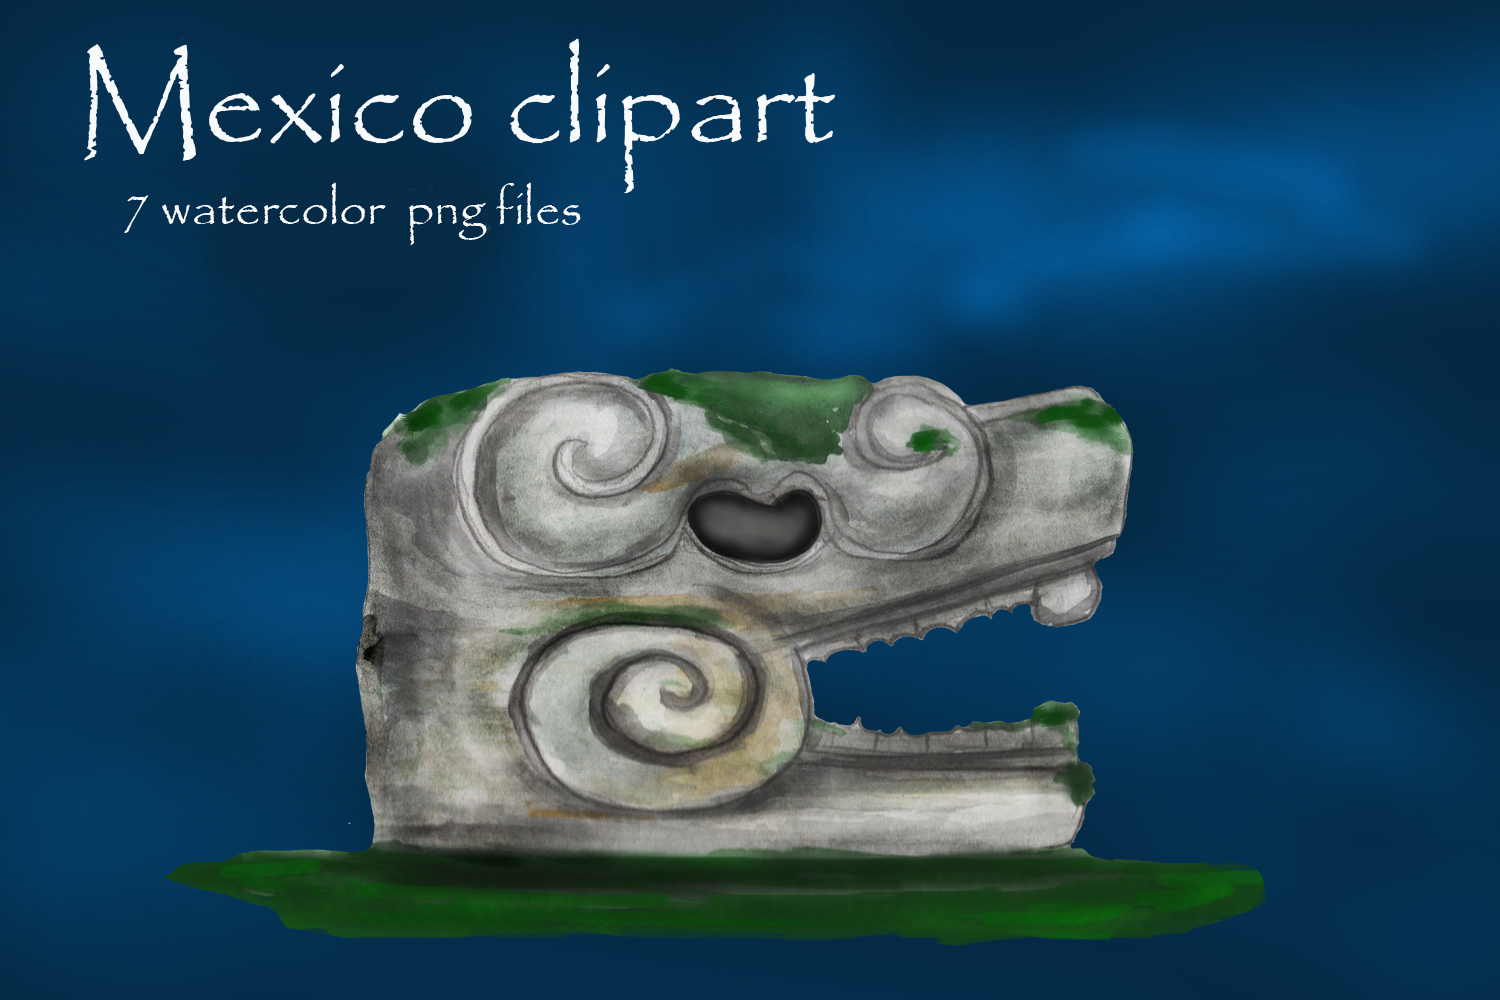 Mayan clipart, ancient civilizations of Mexico watercolor example image 3